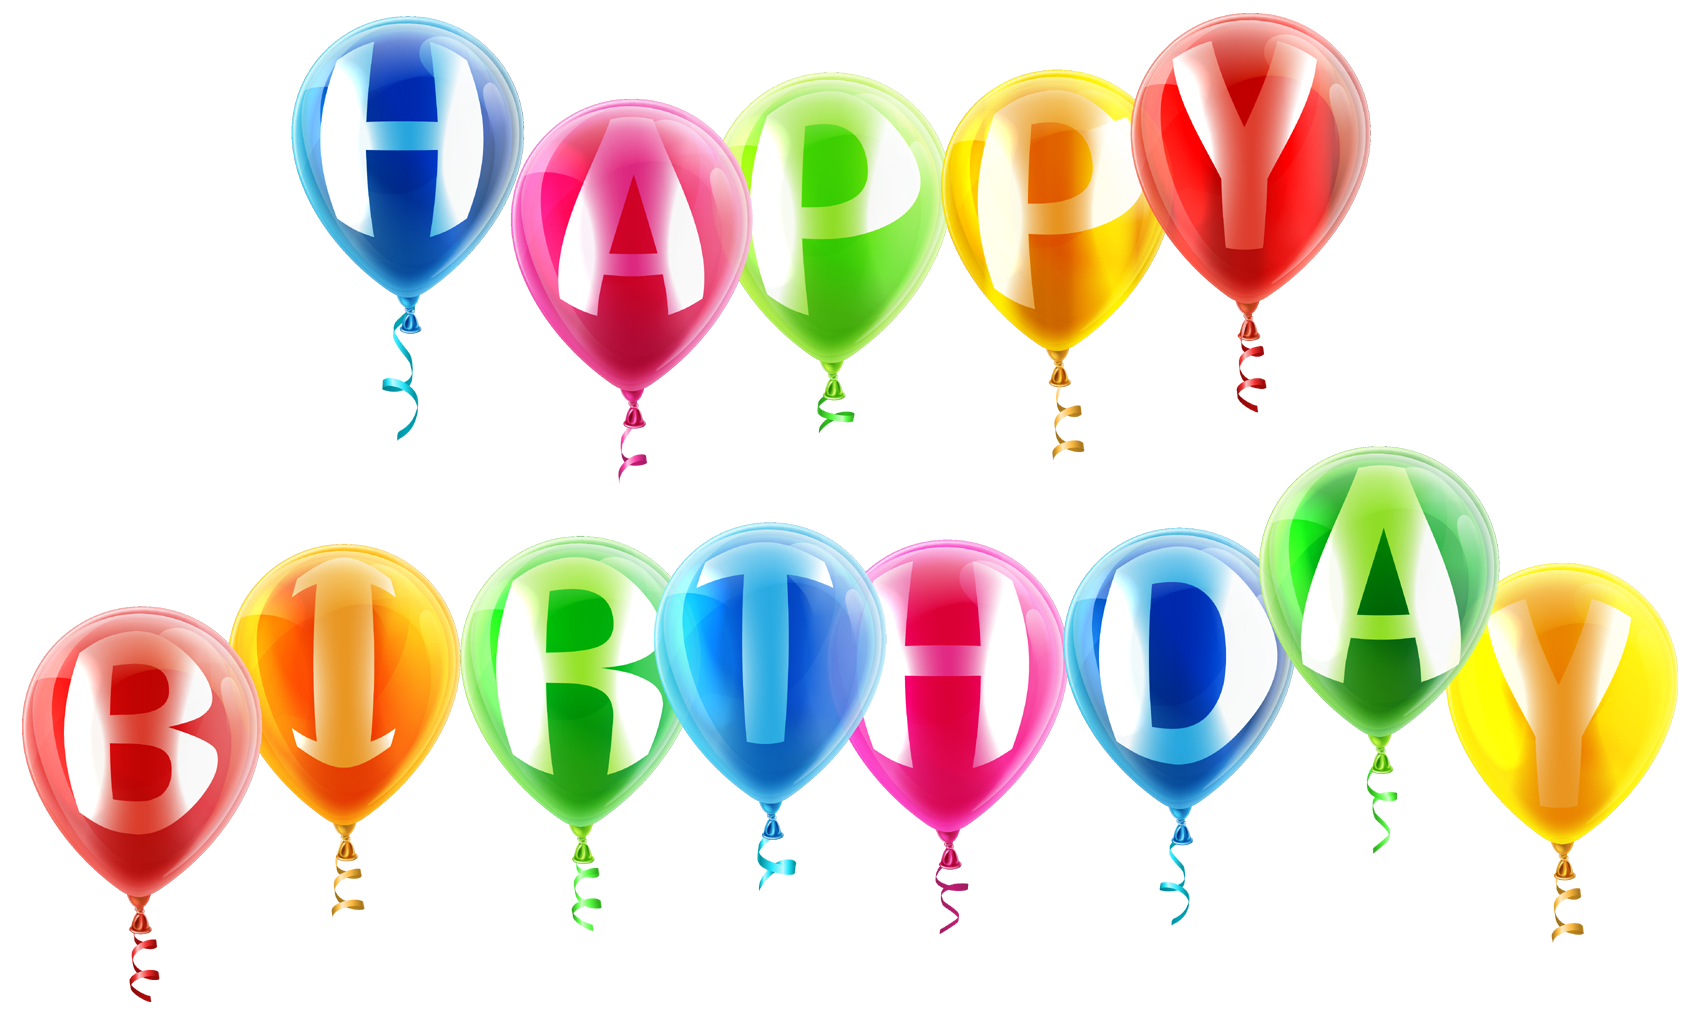 Happy birthday text art design in png vector psd format - Happy birthday balloon images hd ...